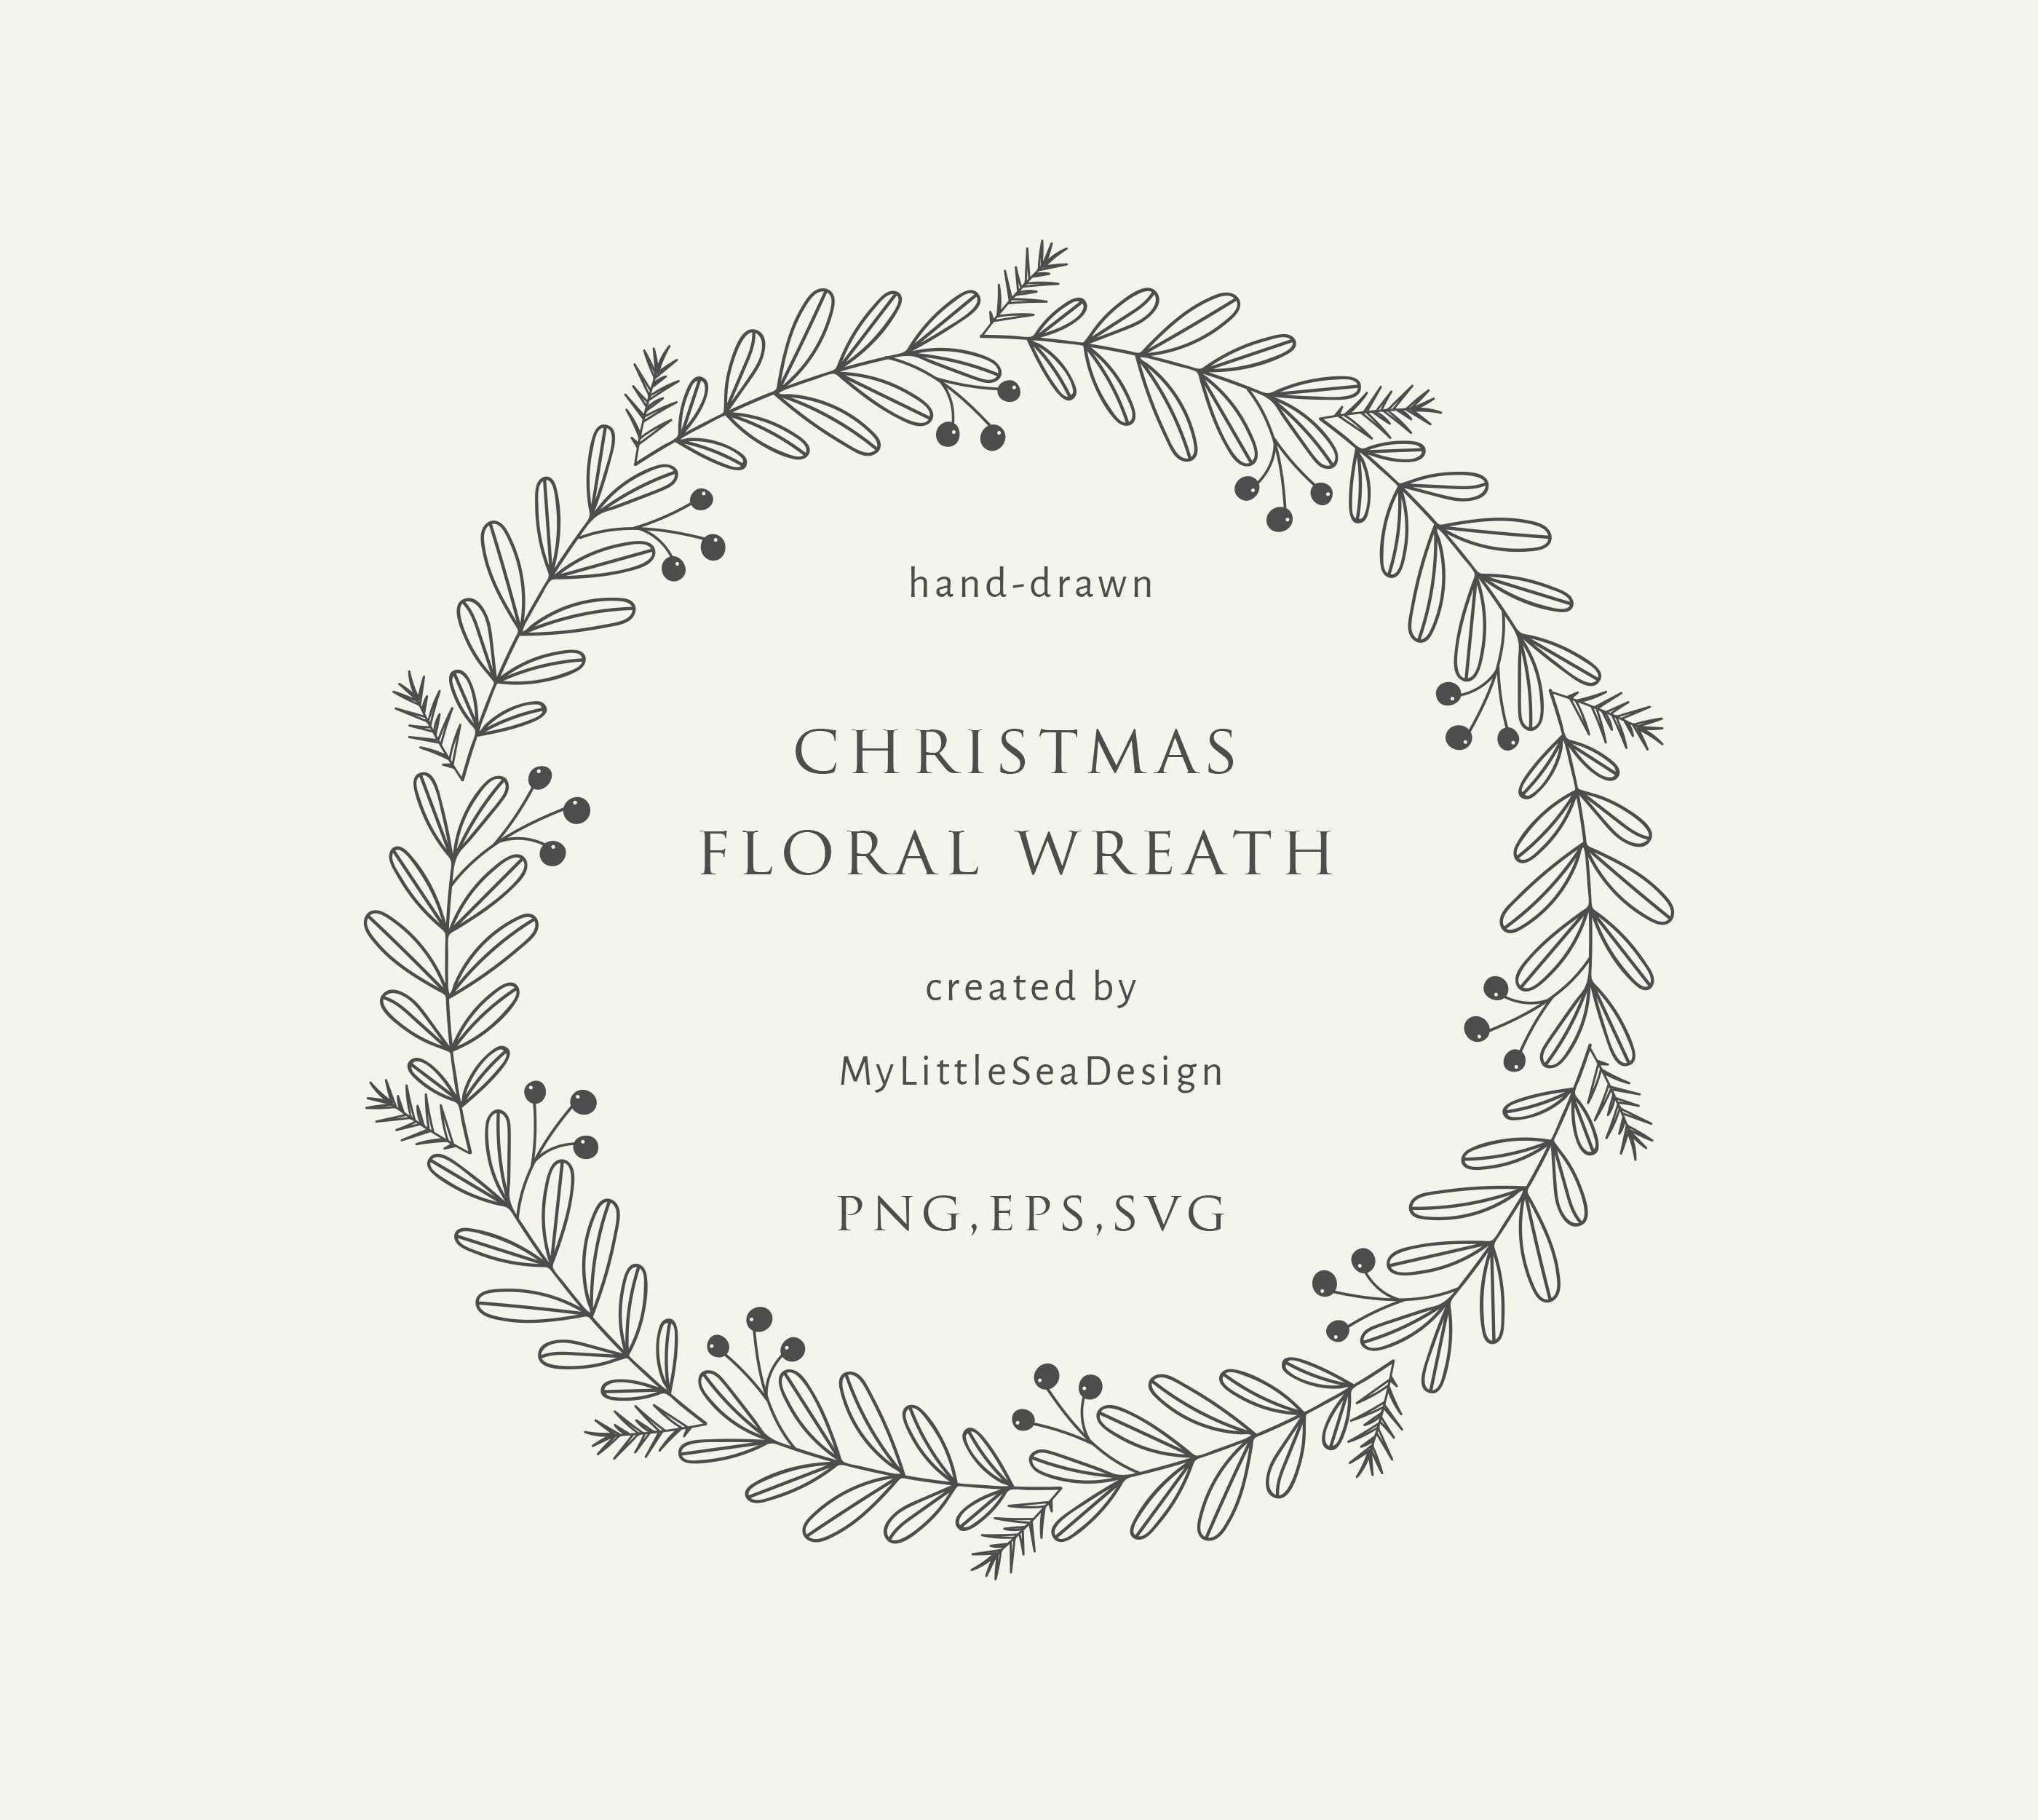 Christmas Floral Wreath Svg Winter Botanical Laurel Wreath Clipart Svg Vector Files Clip Art For Greeting Cards Wedding Invitations Wreath Drawing Floral Wreaths Illustration Hand Embroidery Art